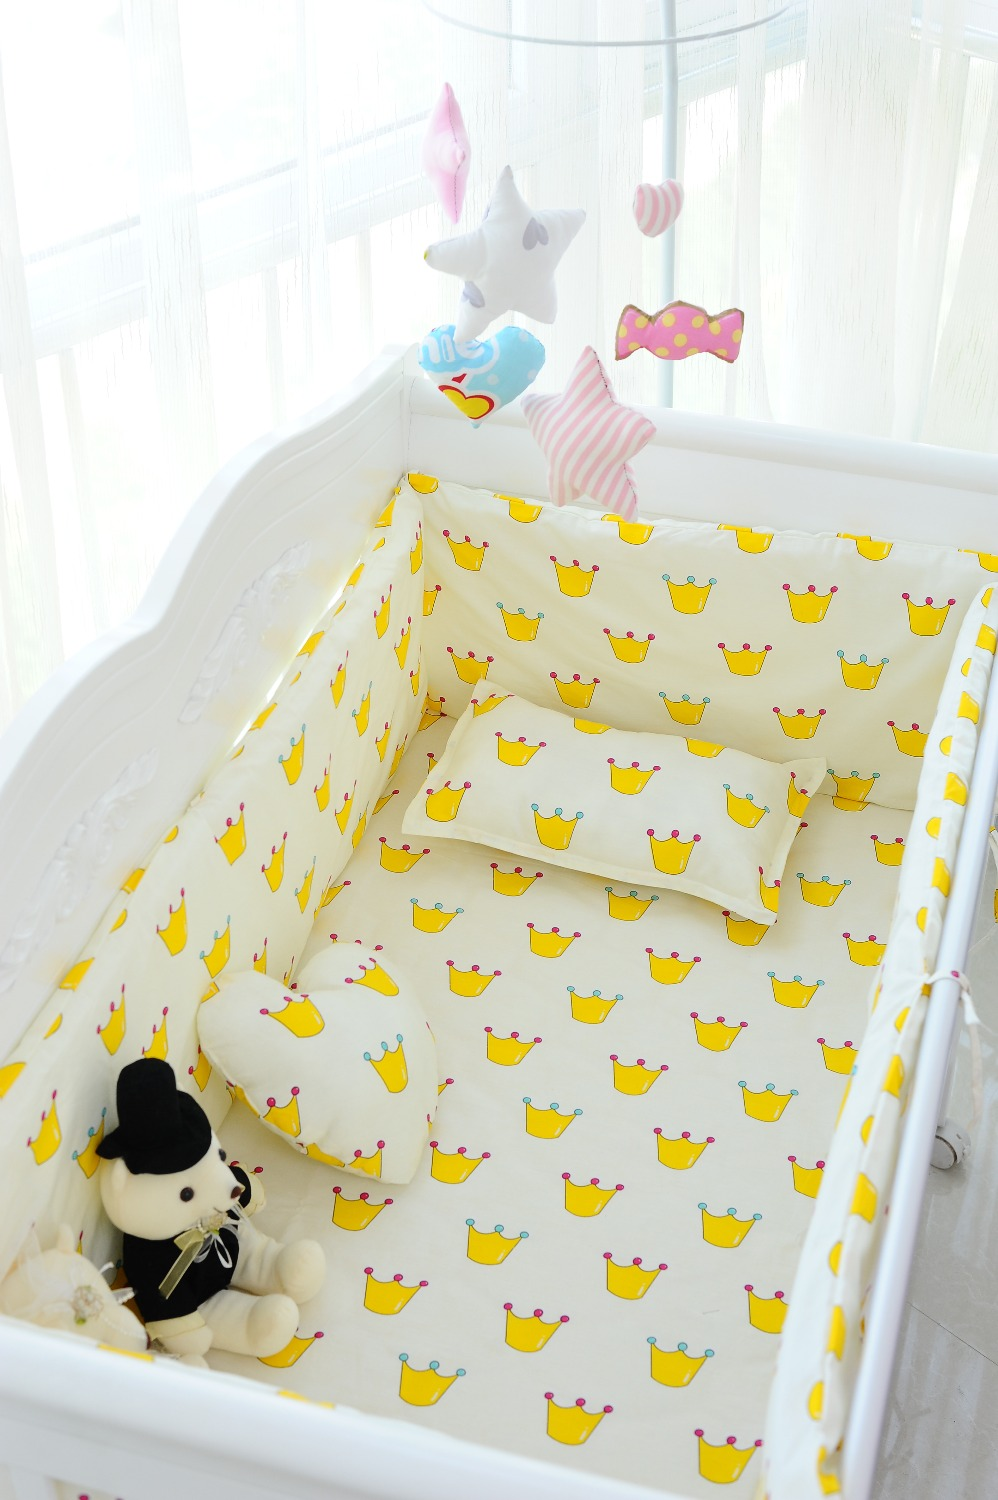 Promotion! 6PCS Crib bedding kit baby bedding kit bed around baby bed around  (bumpers+sheet+pillow cover)<br><br>Aliexpress